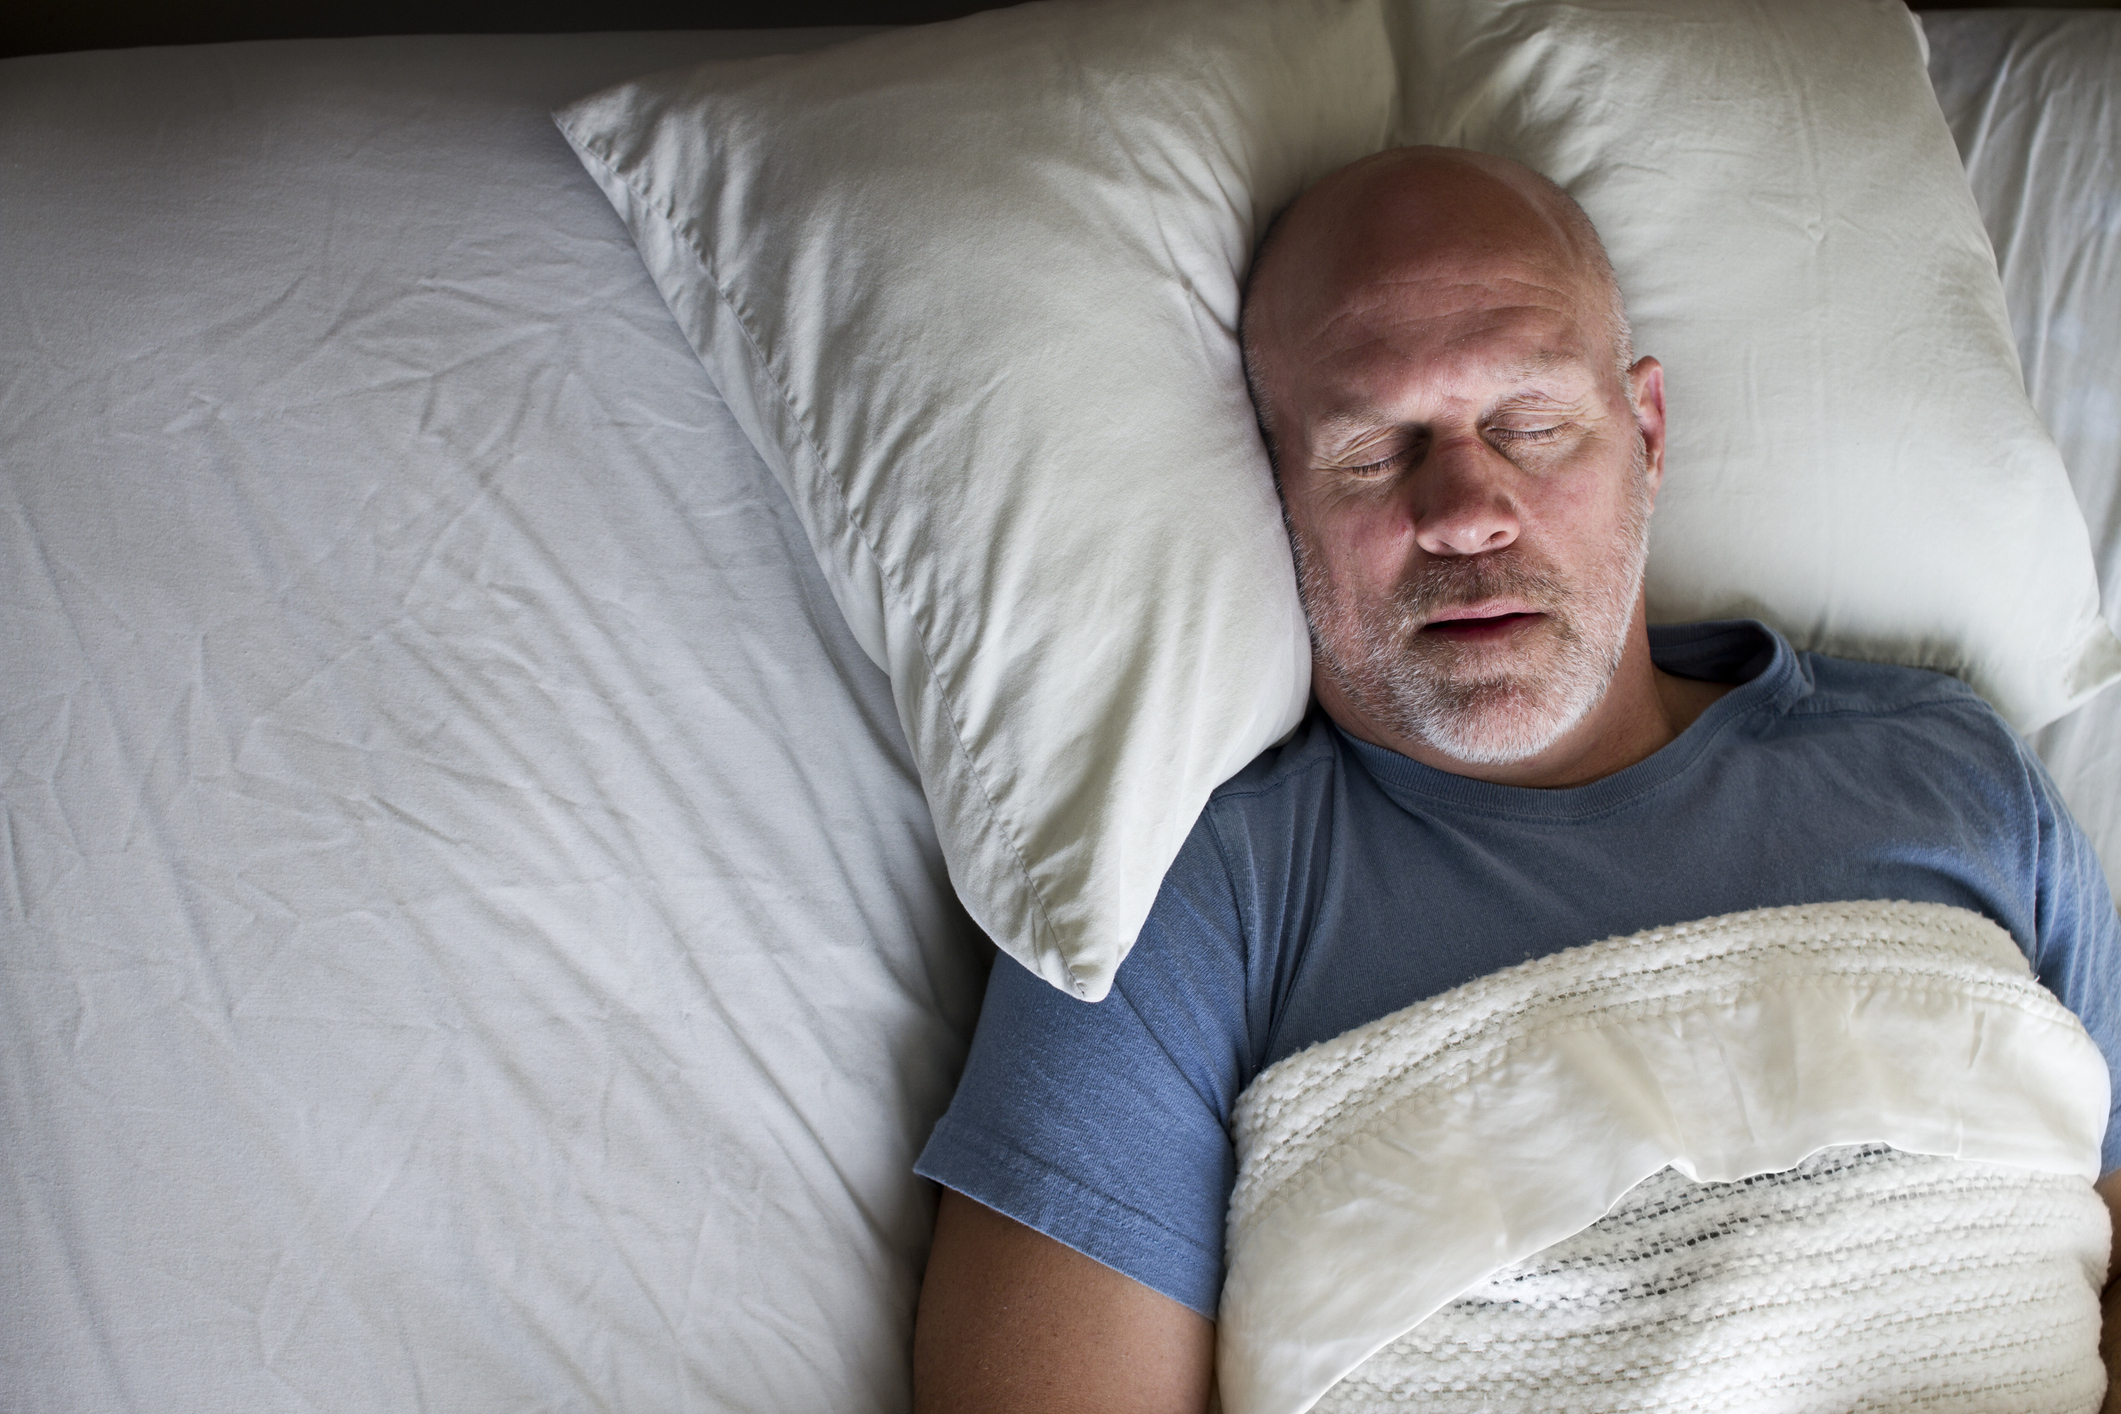 Manage Your Weight with Better Sleep